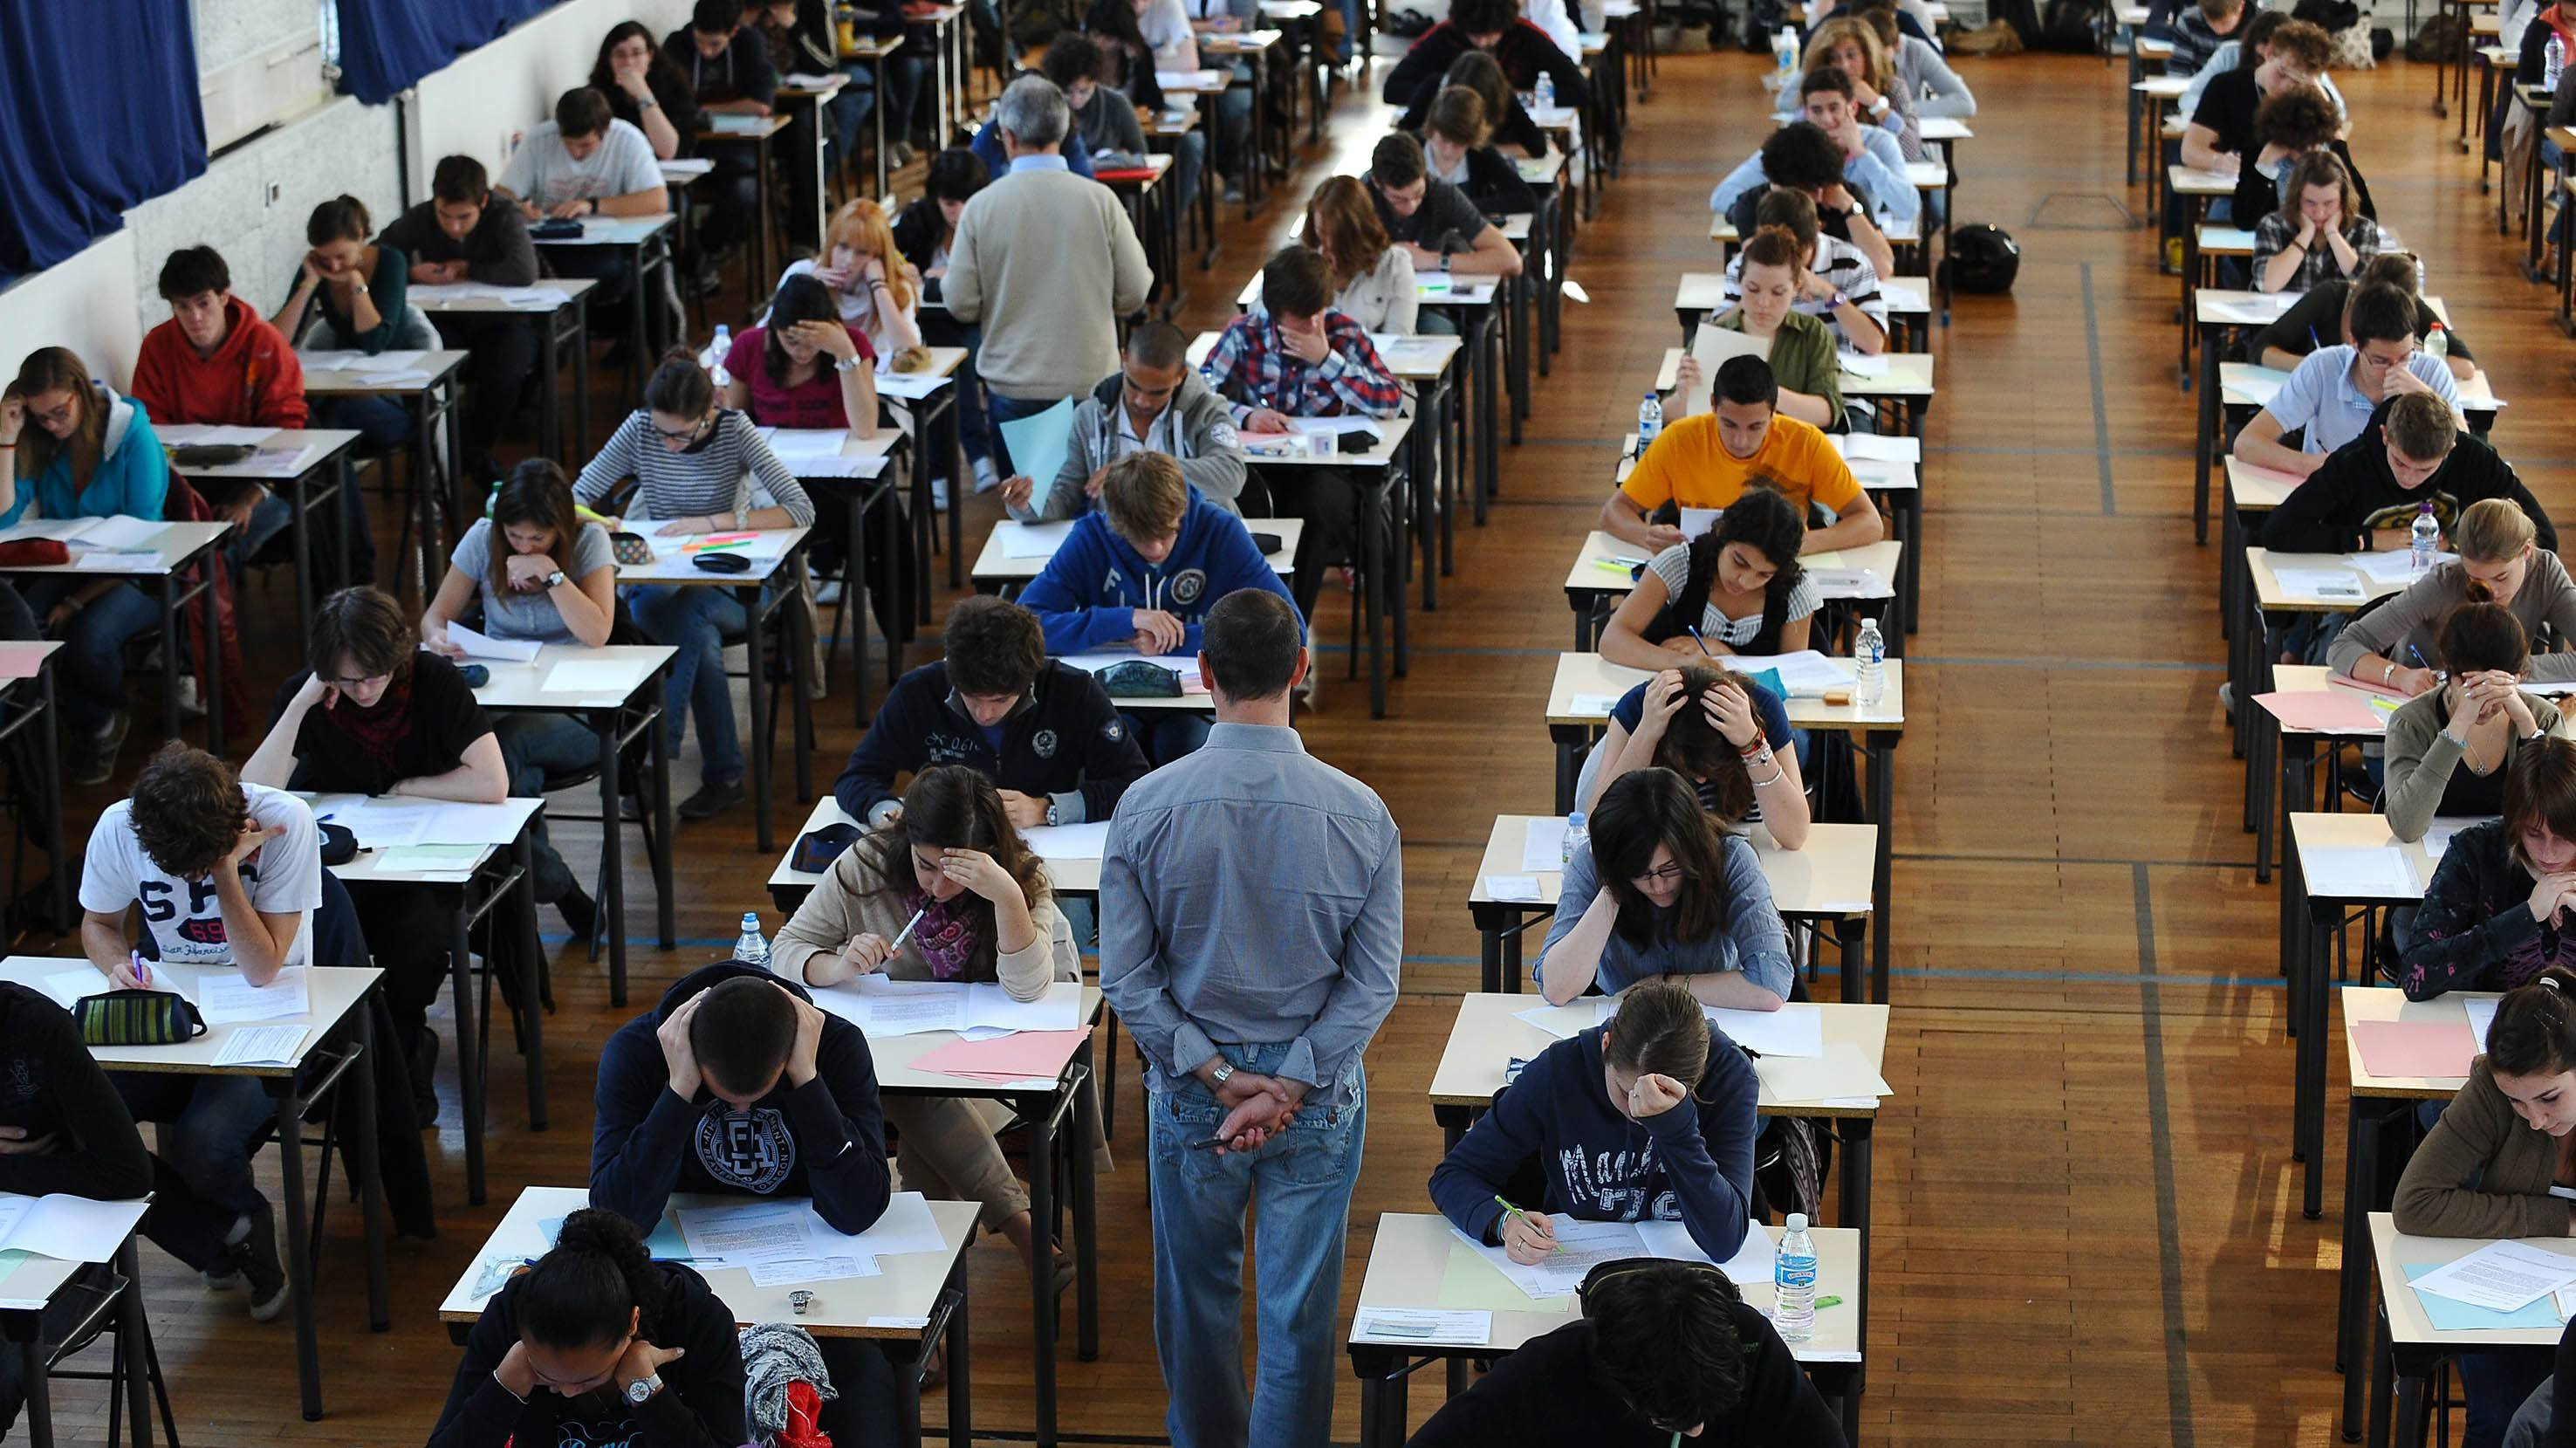 Your Time S Up Students Angered By Exam Mark Delay